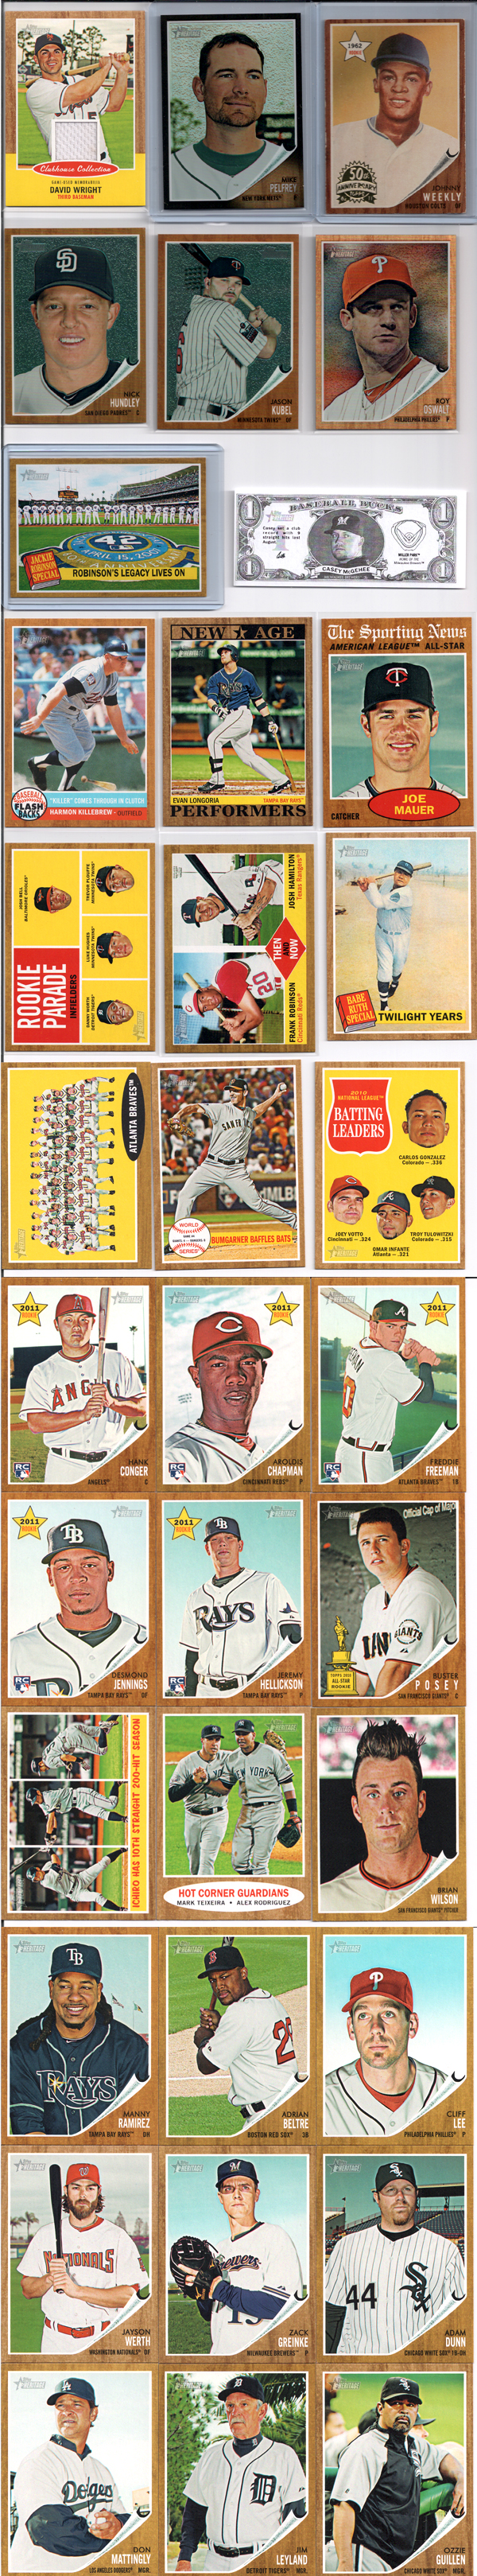 2011 Topps Heritage Review 11